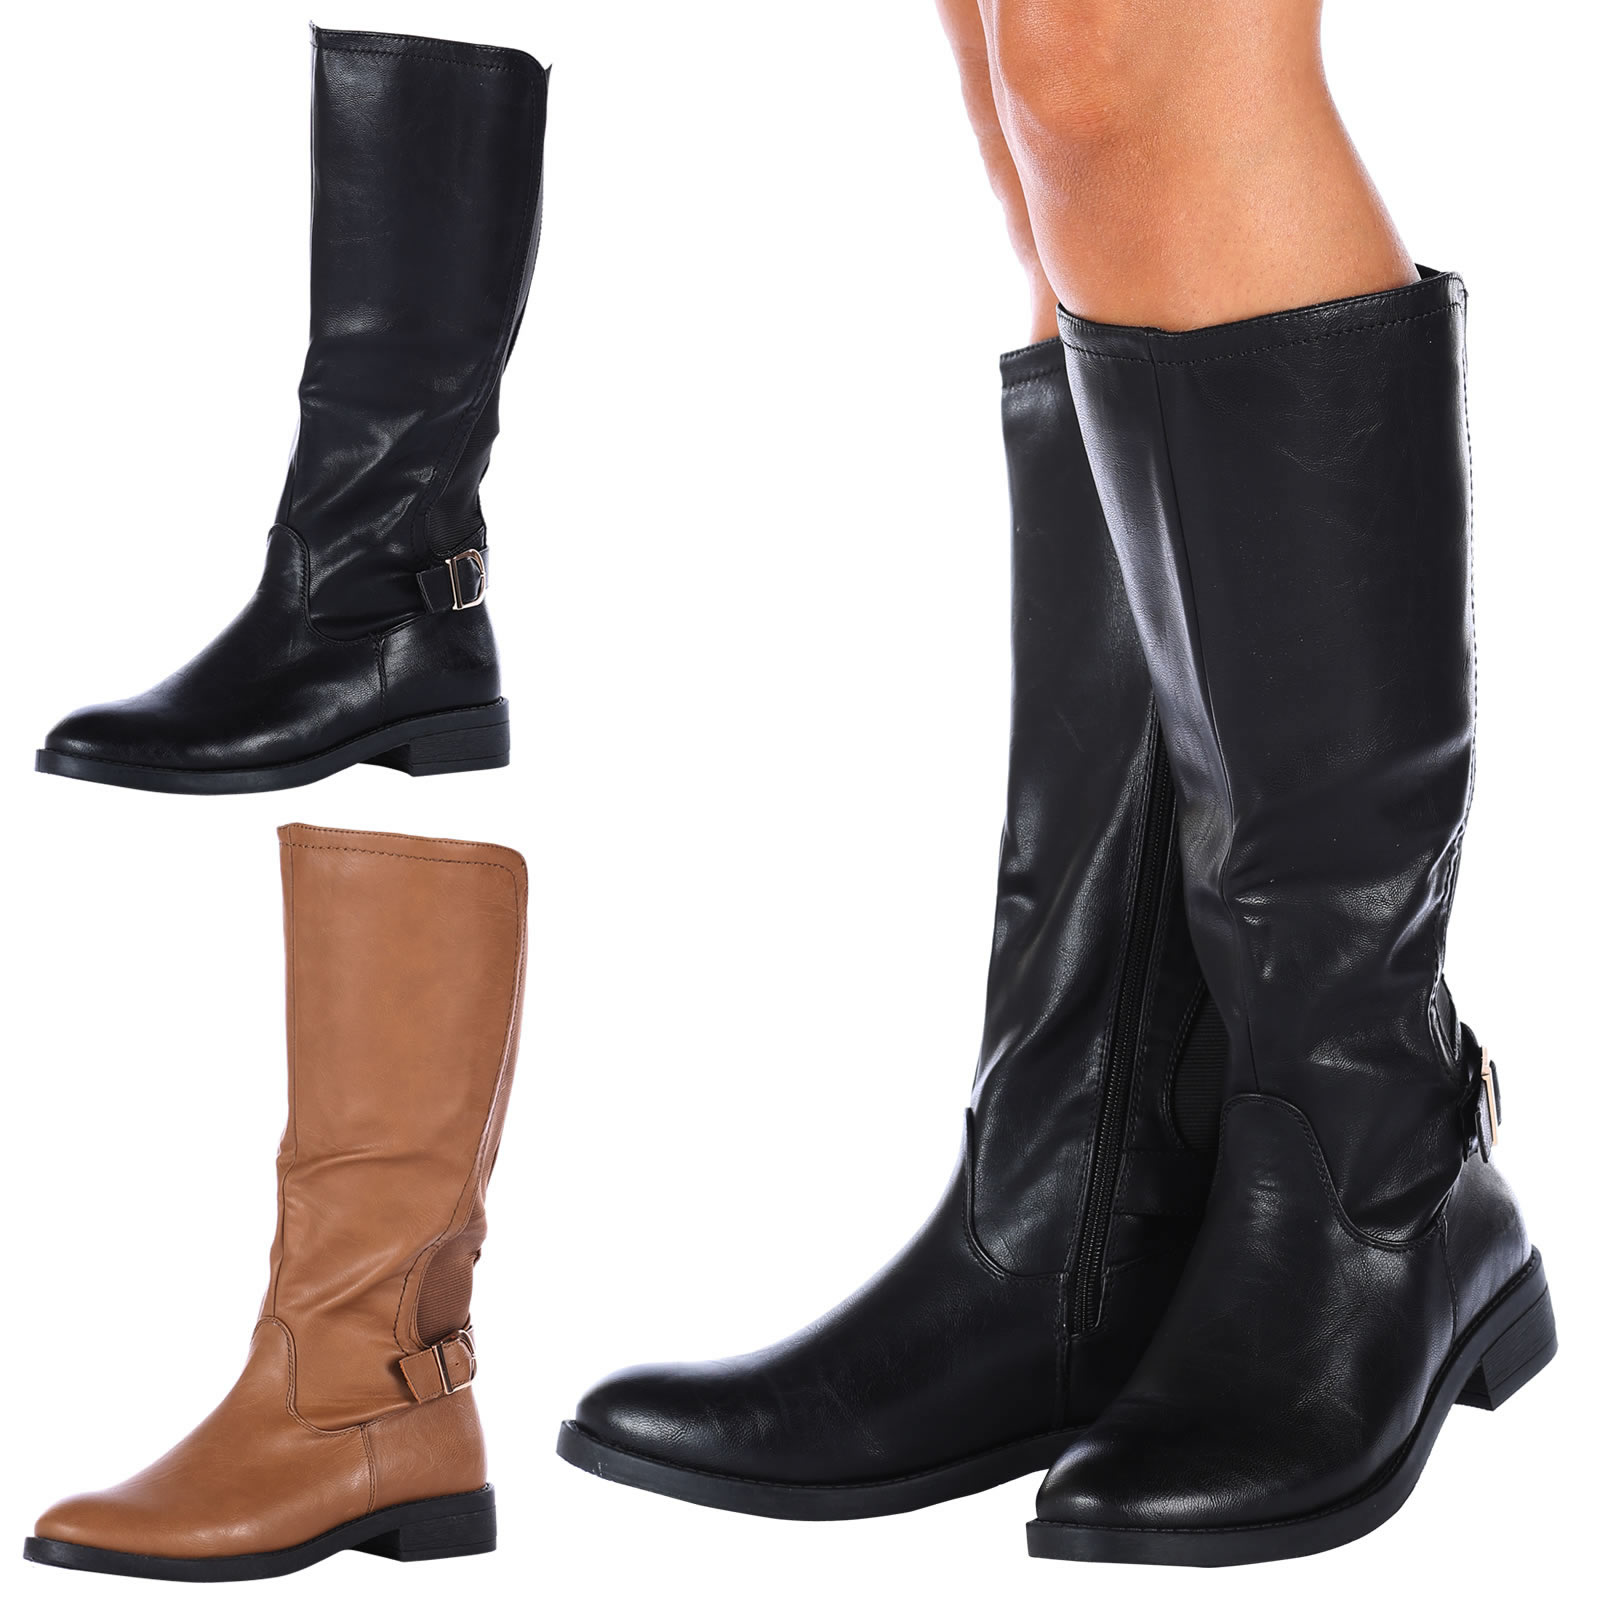 WOMENS BOOTS LADIES MID CALF FLATS WIDE STRETCH KNEE HIGH ...